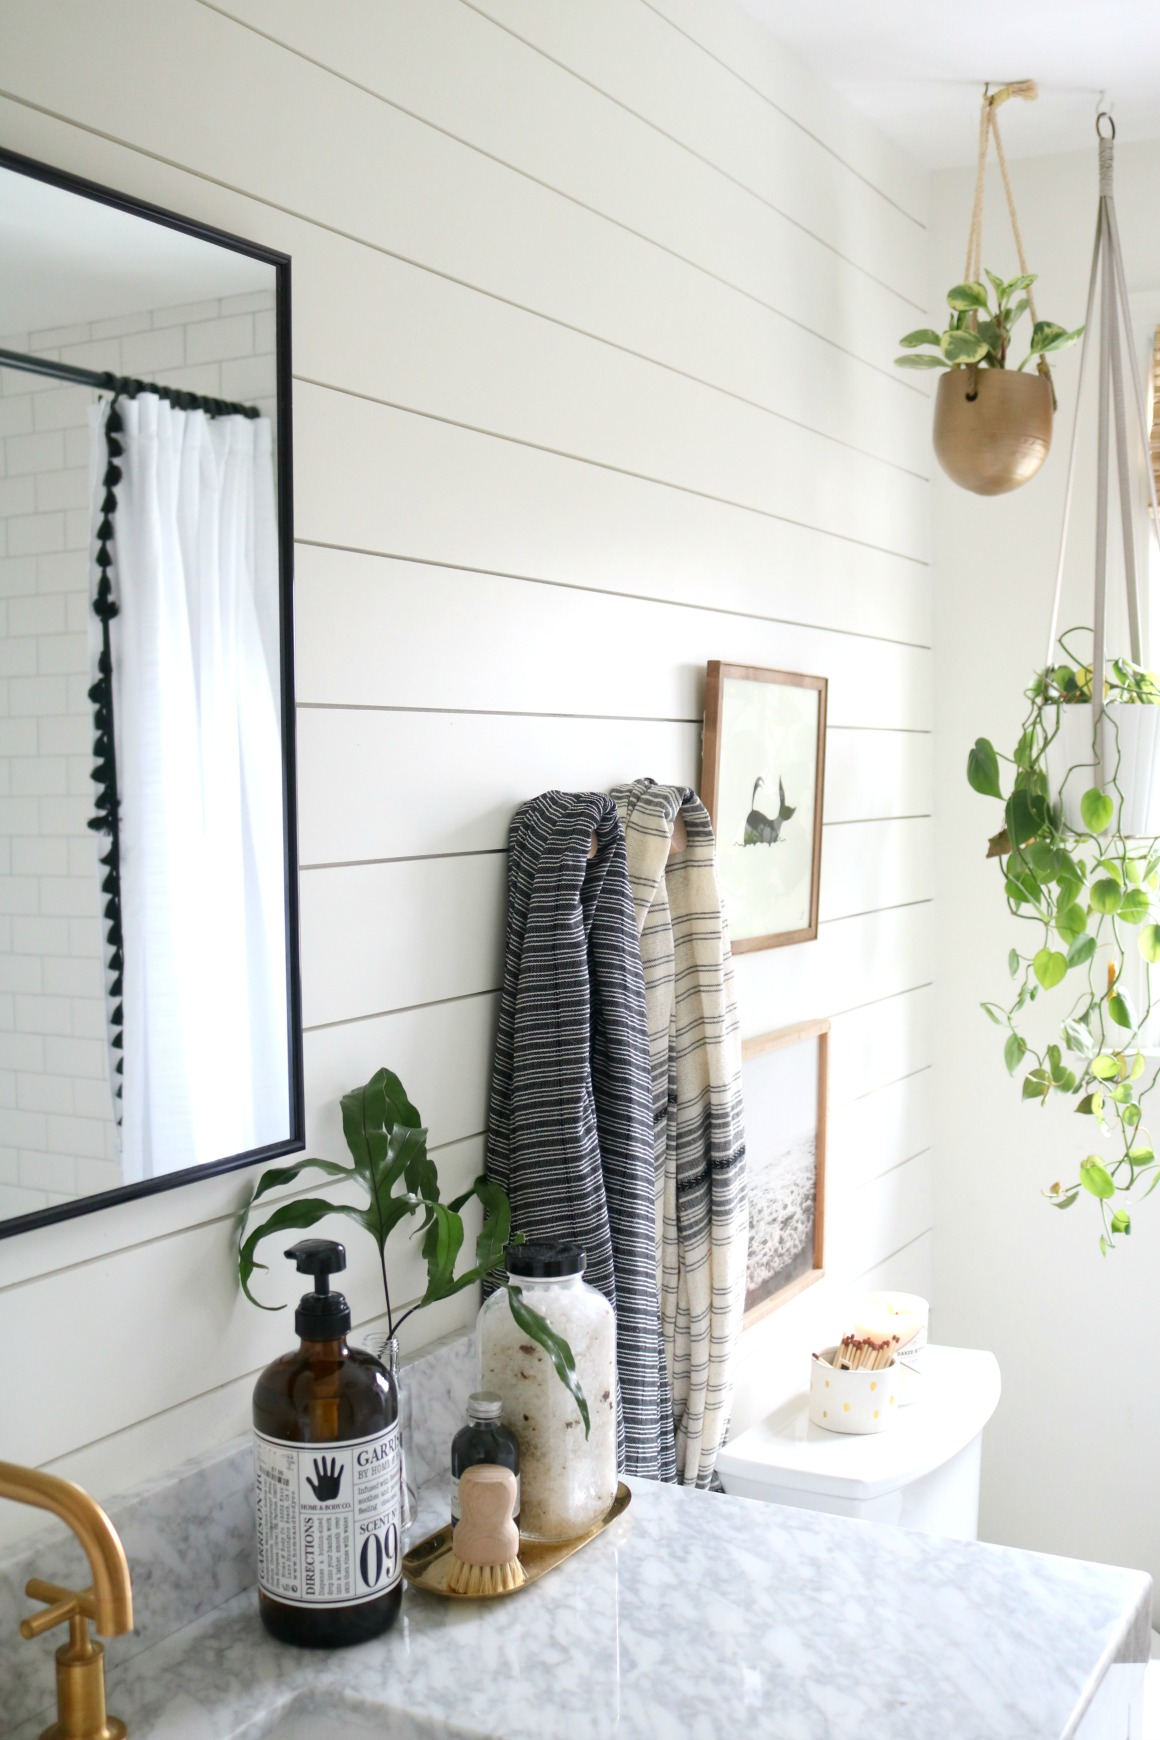 AZEK  The BEST Shiplap Look In A Bathroom